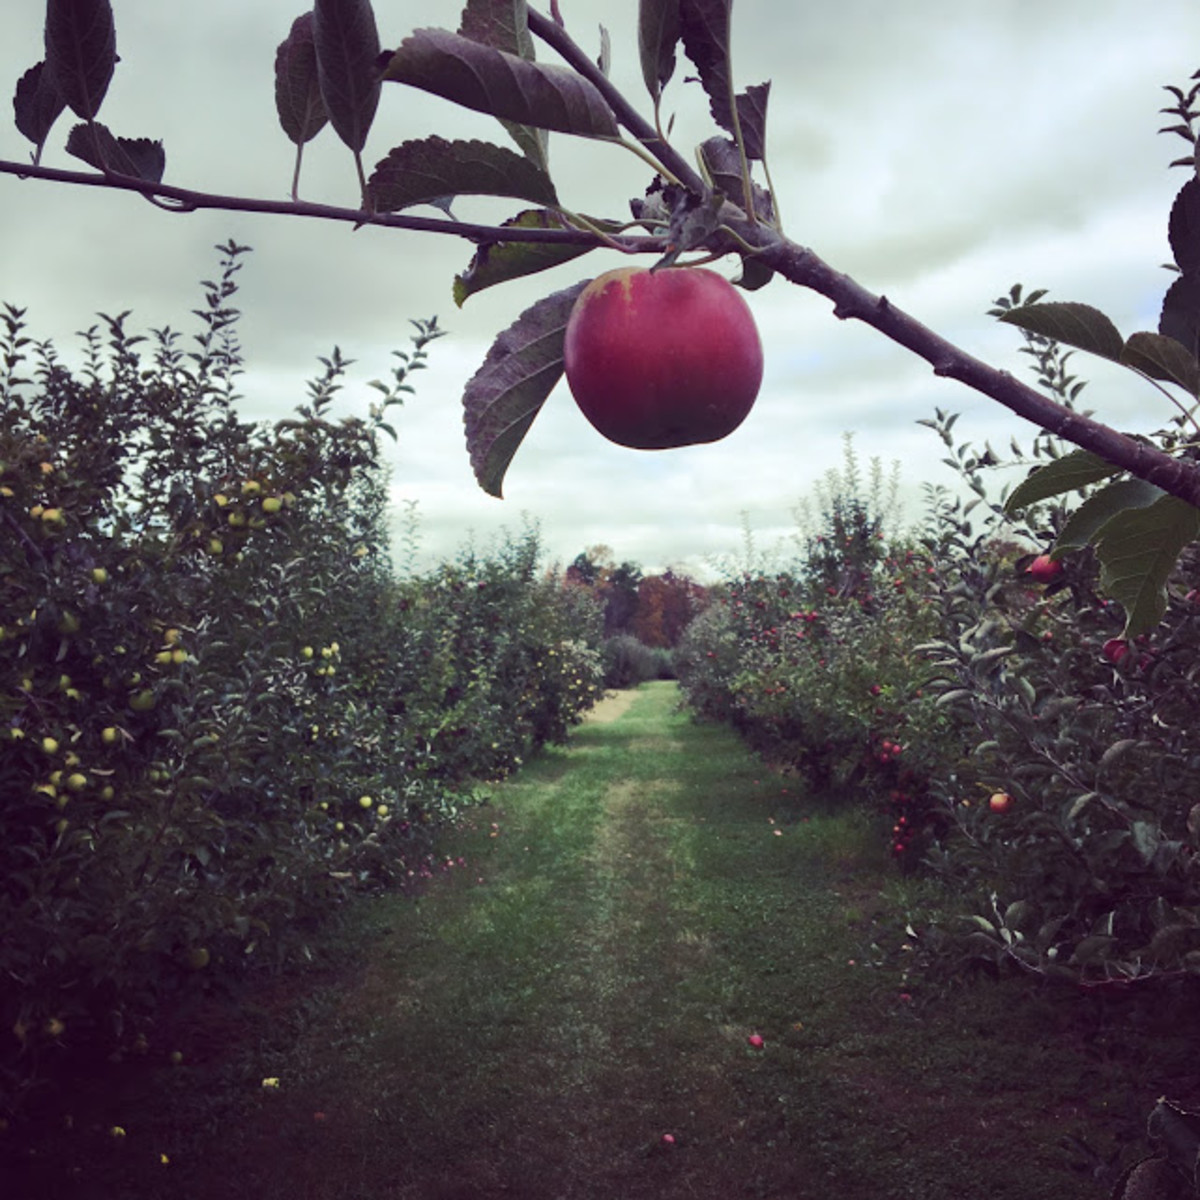 Apple picking in the fall is quintessential New England!